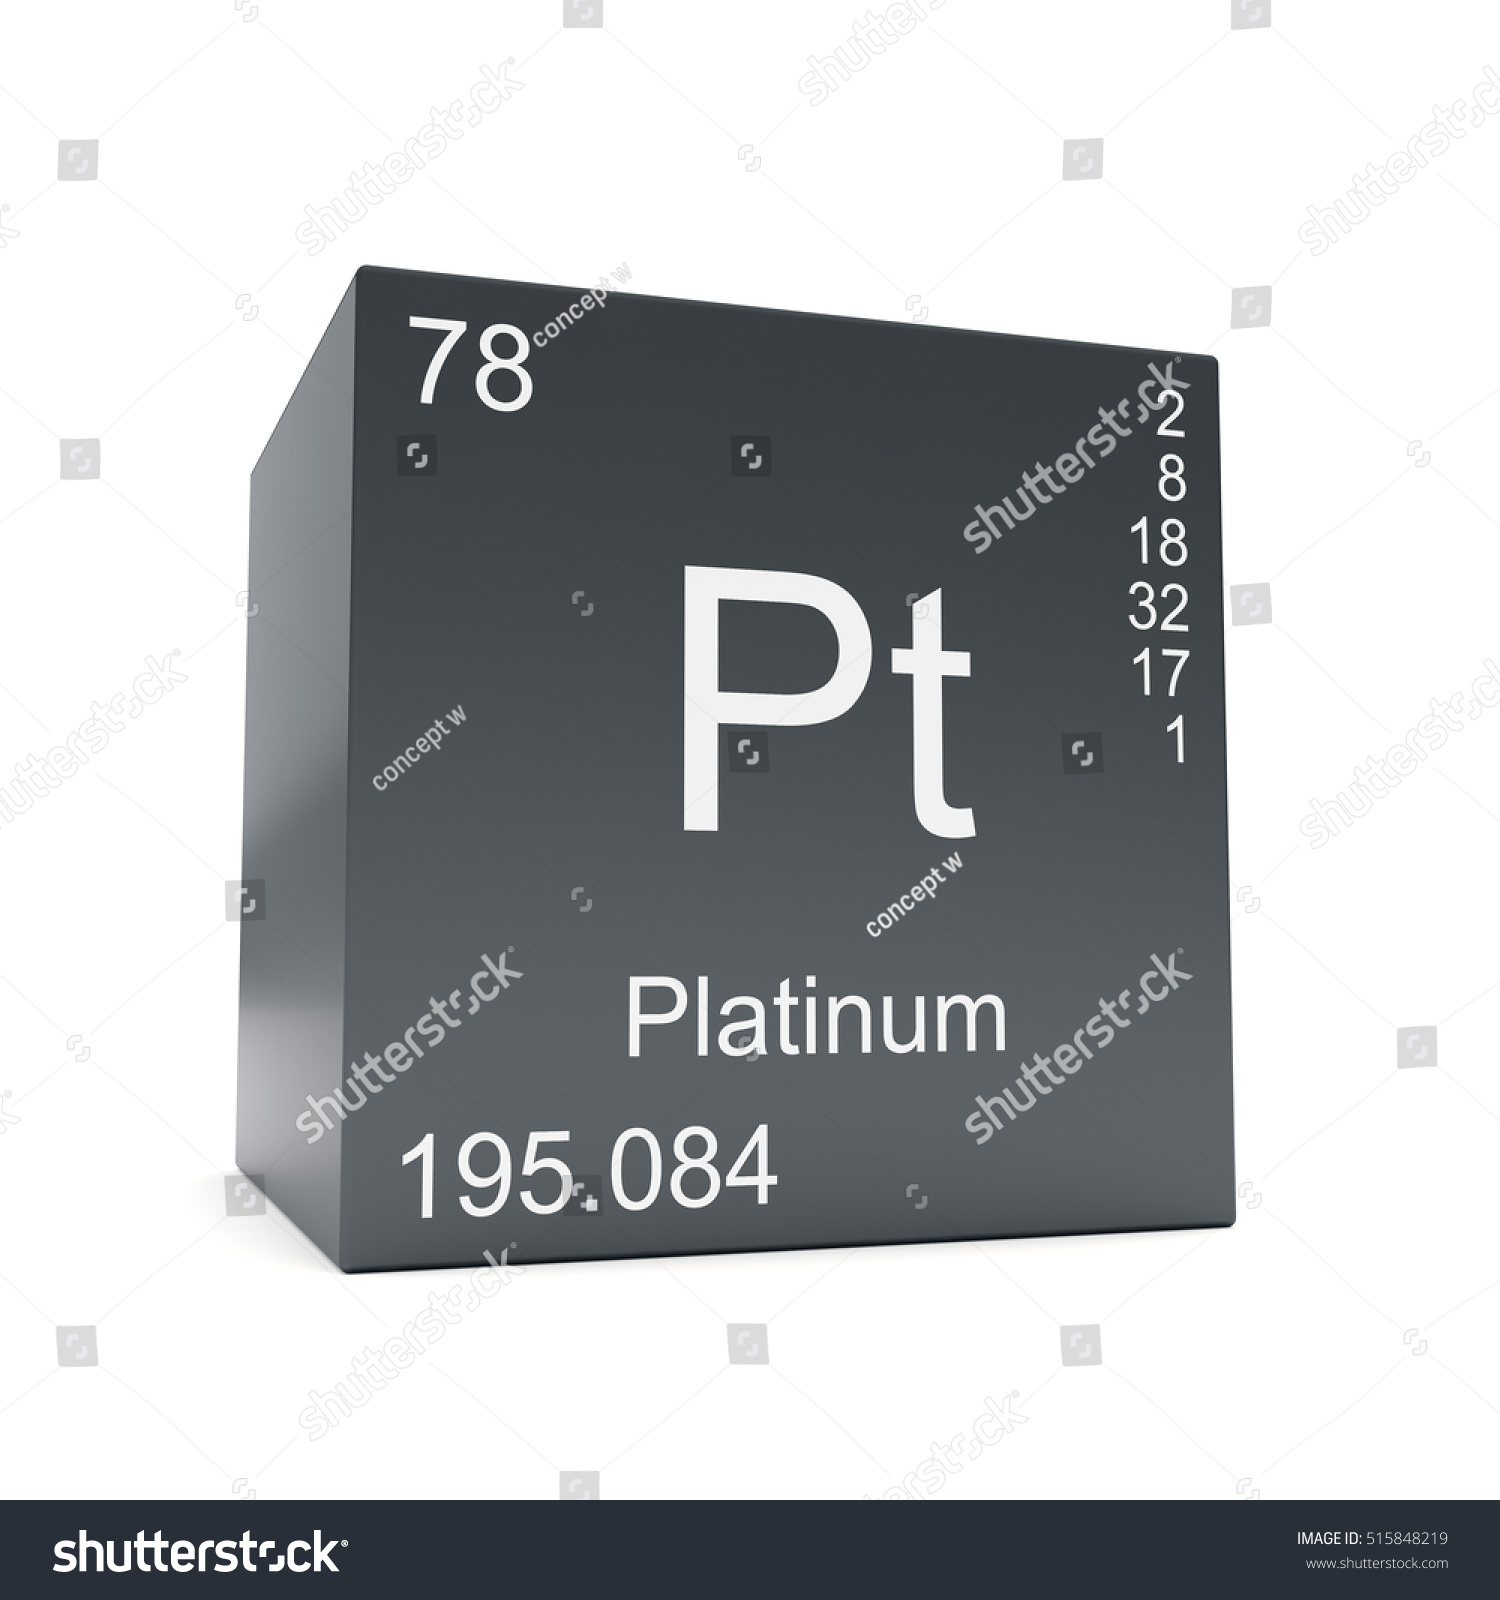 Platinum Chemical Element Symbol Periodic Table Stock Illustration